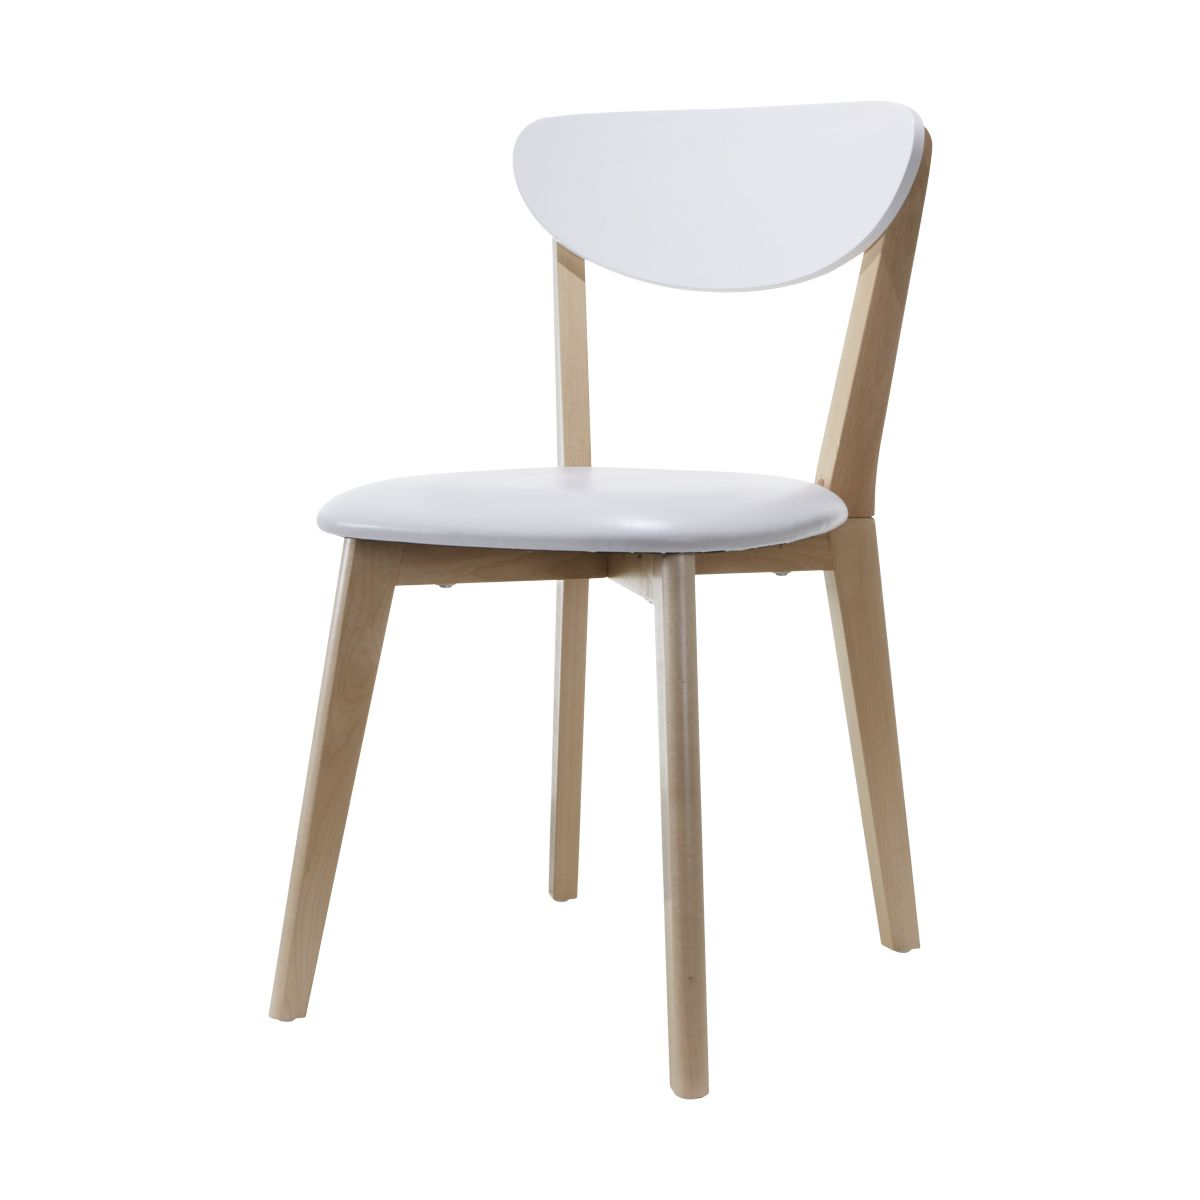 Bianca Dining Chair  Kmart  House Ideas  Pinterest  Dining Simple Kmart Kitchen Chairs Inspiration Design